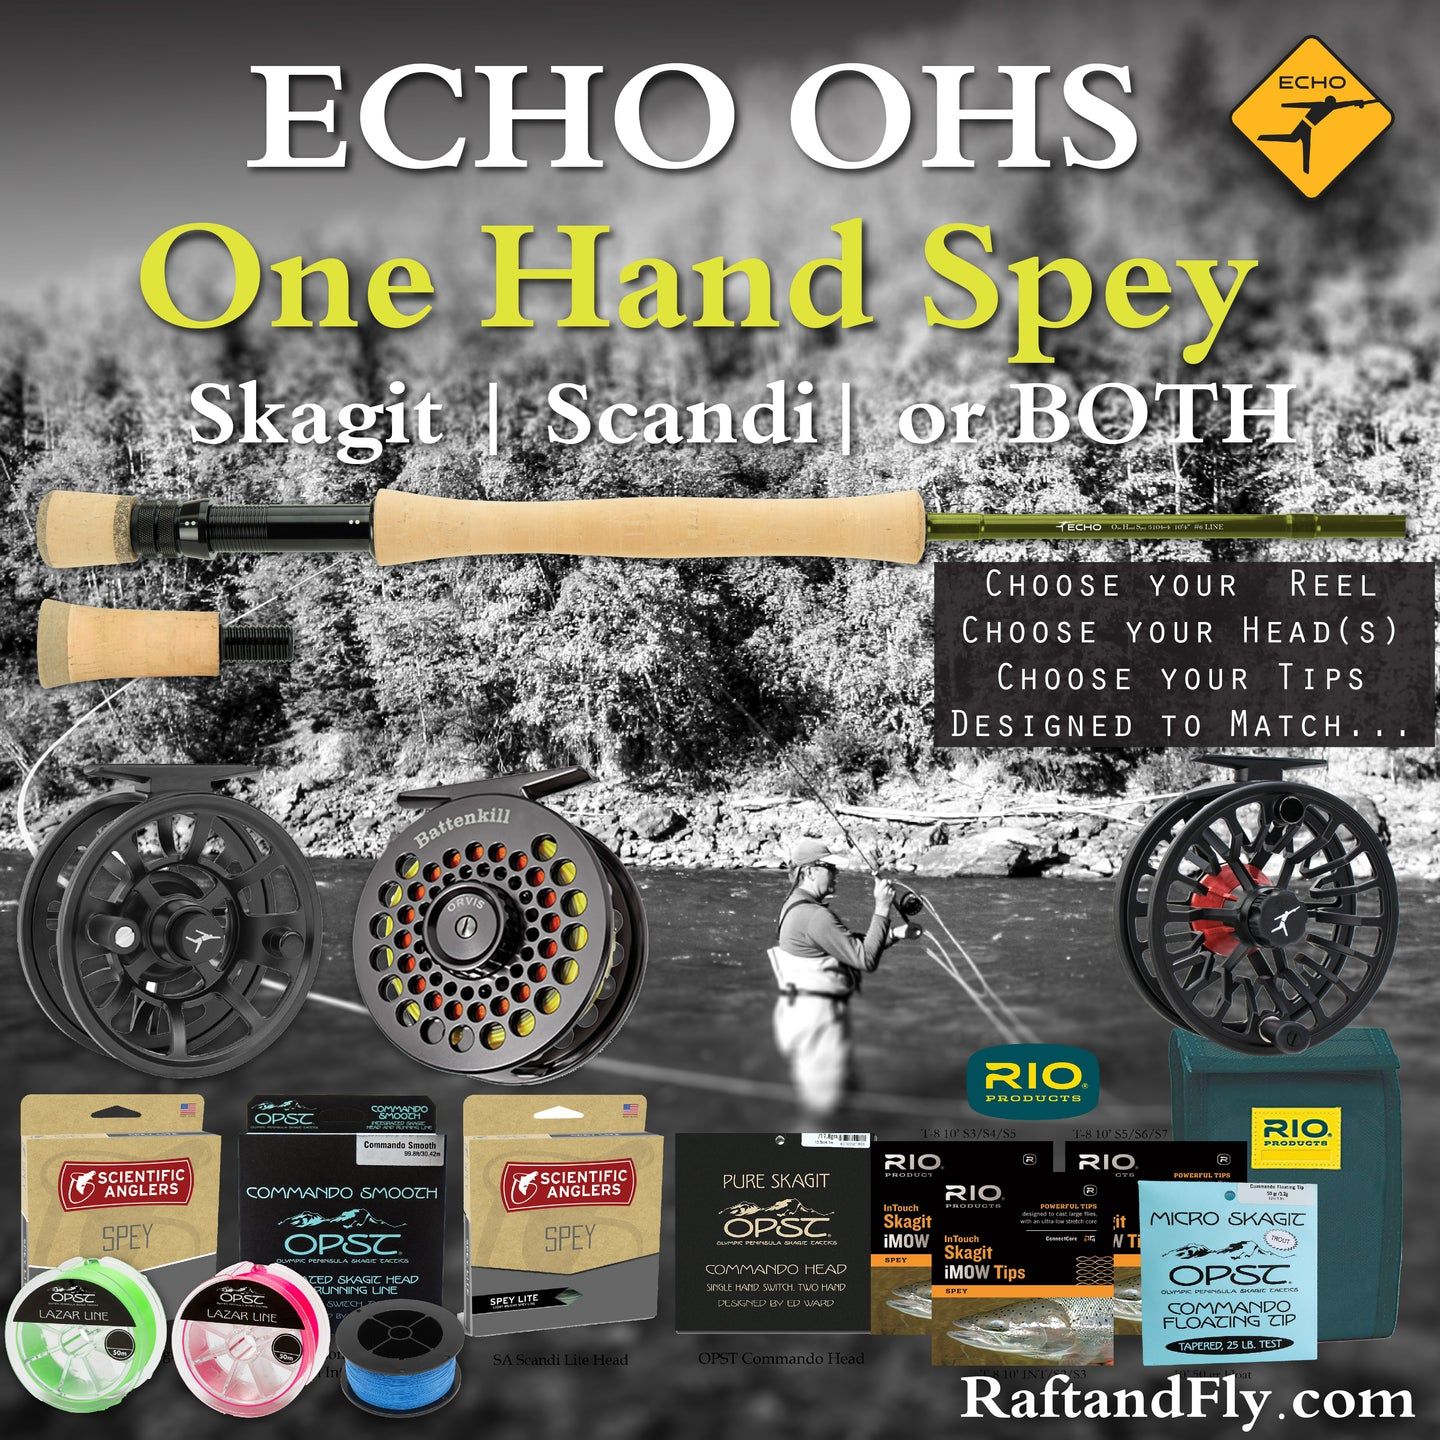 Echo OHS 7wt 4wt Trout Spey Outfit sale